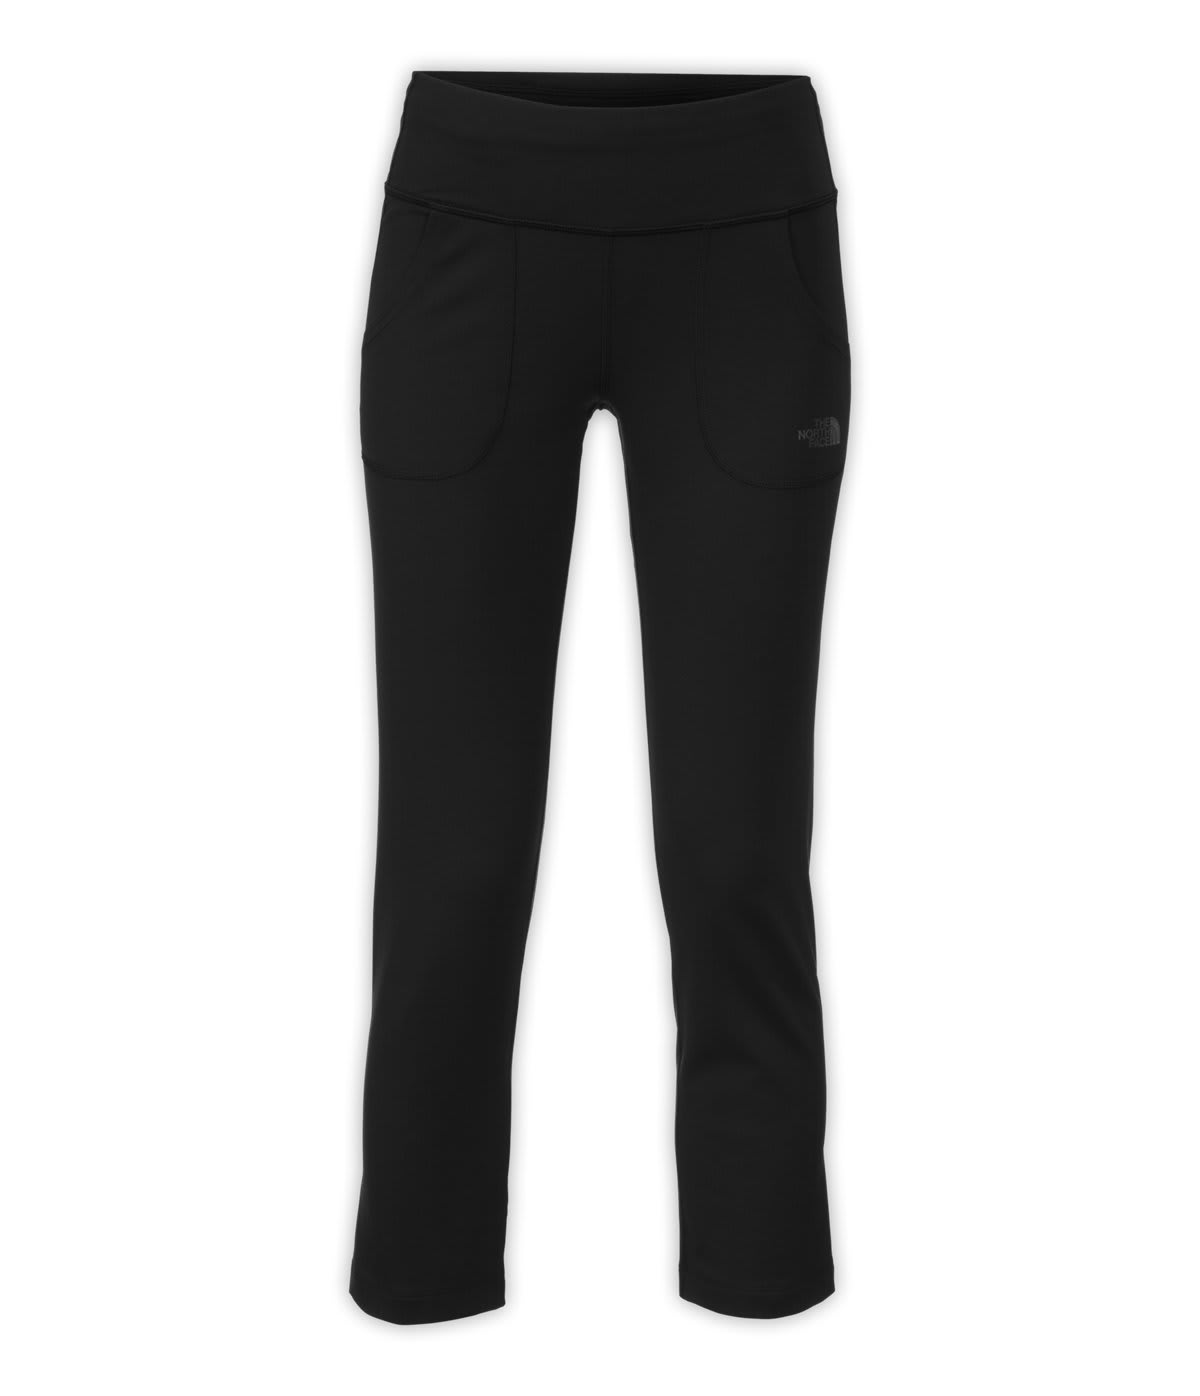 The North Face Motivation Slim Capri Leggings nf4mscw02tbk16zz-the-north-face-casual-pants